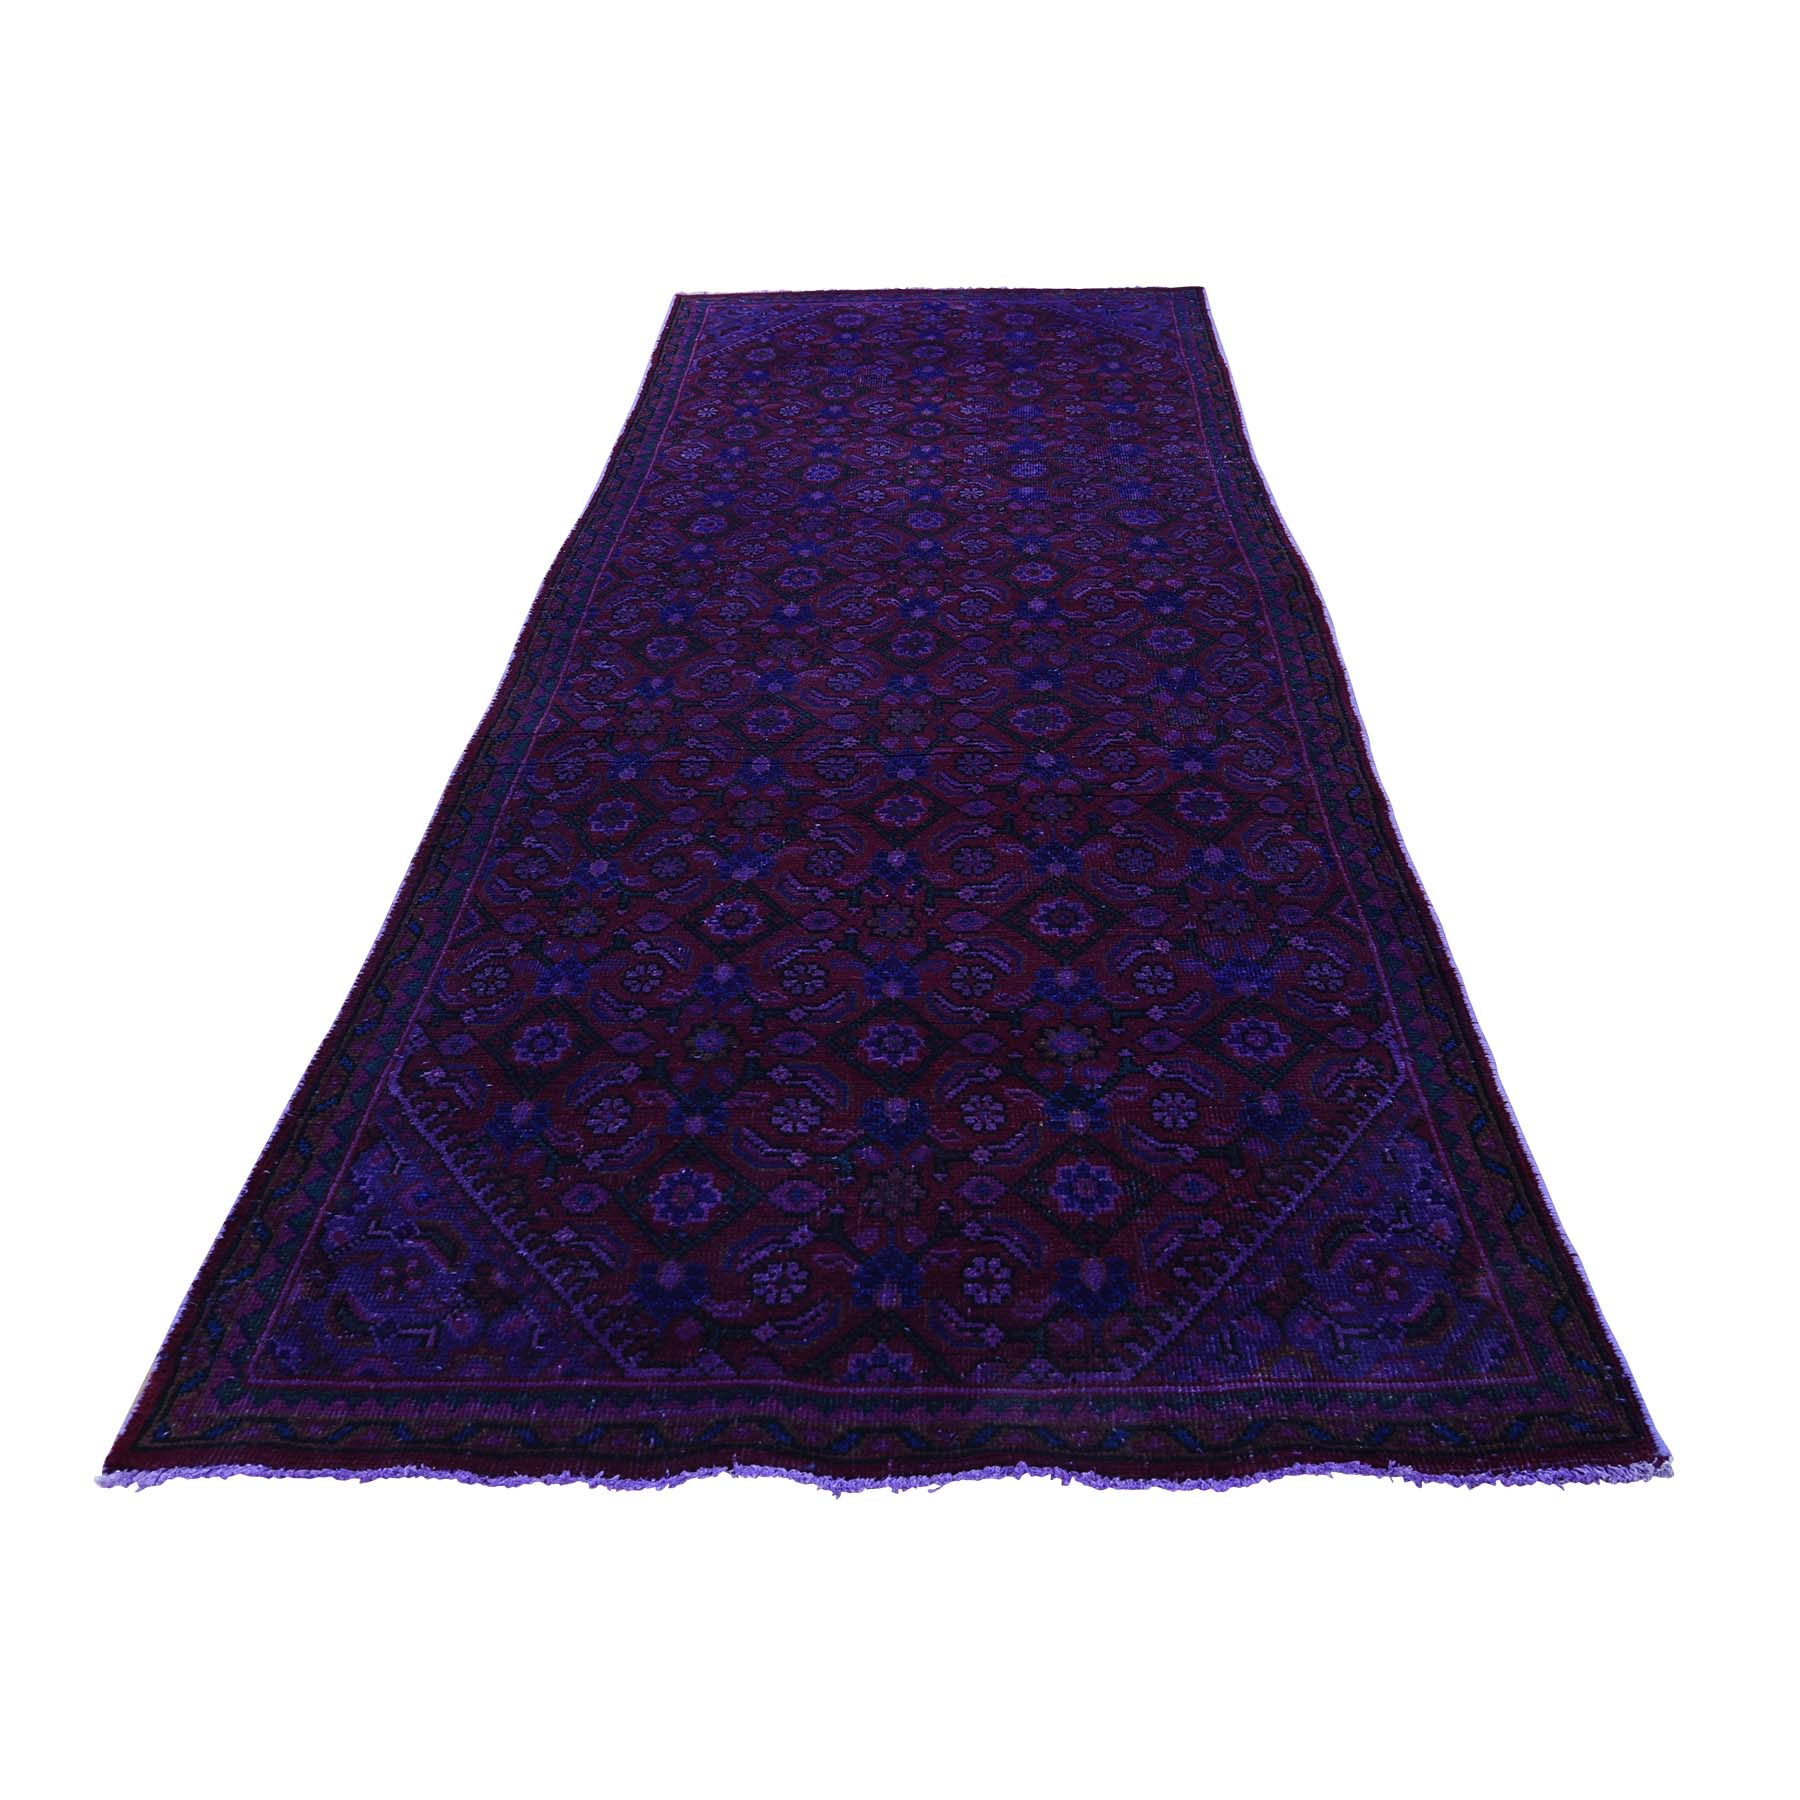 3'9''X10'4'' Hand-Knotted Vintage Overdyed Persian Sarouk Mir Wide Runner Rug moac8700